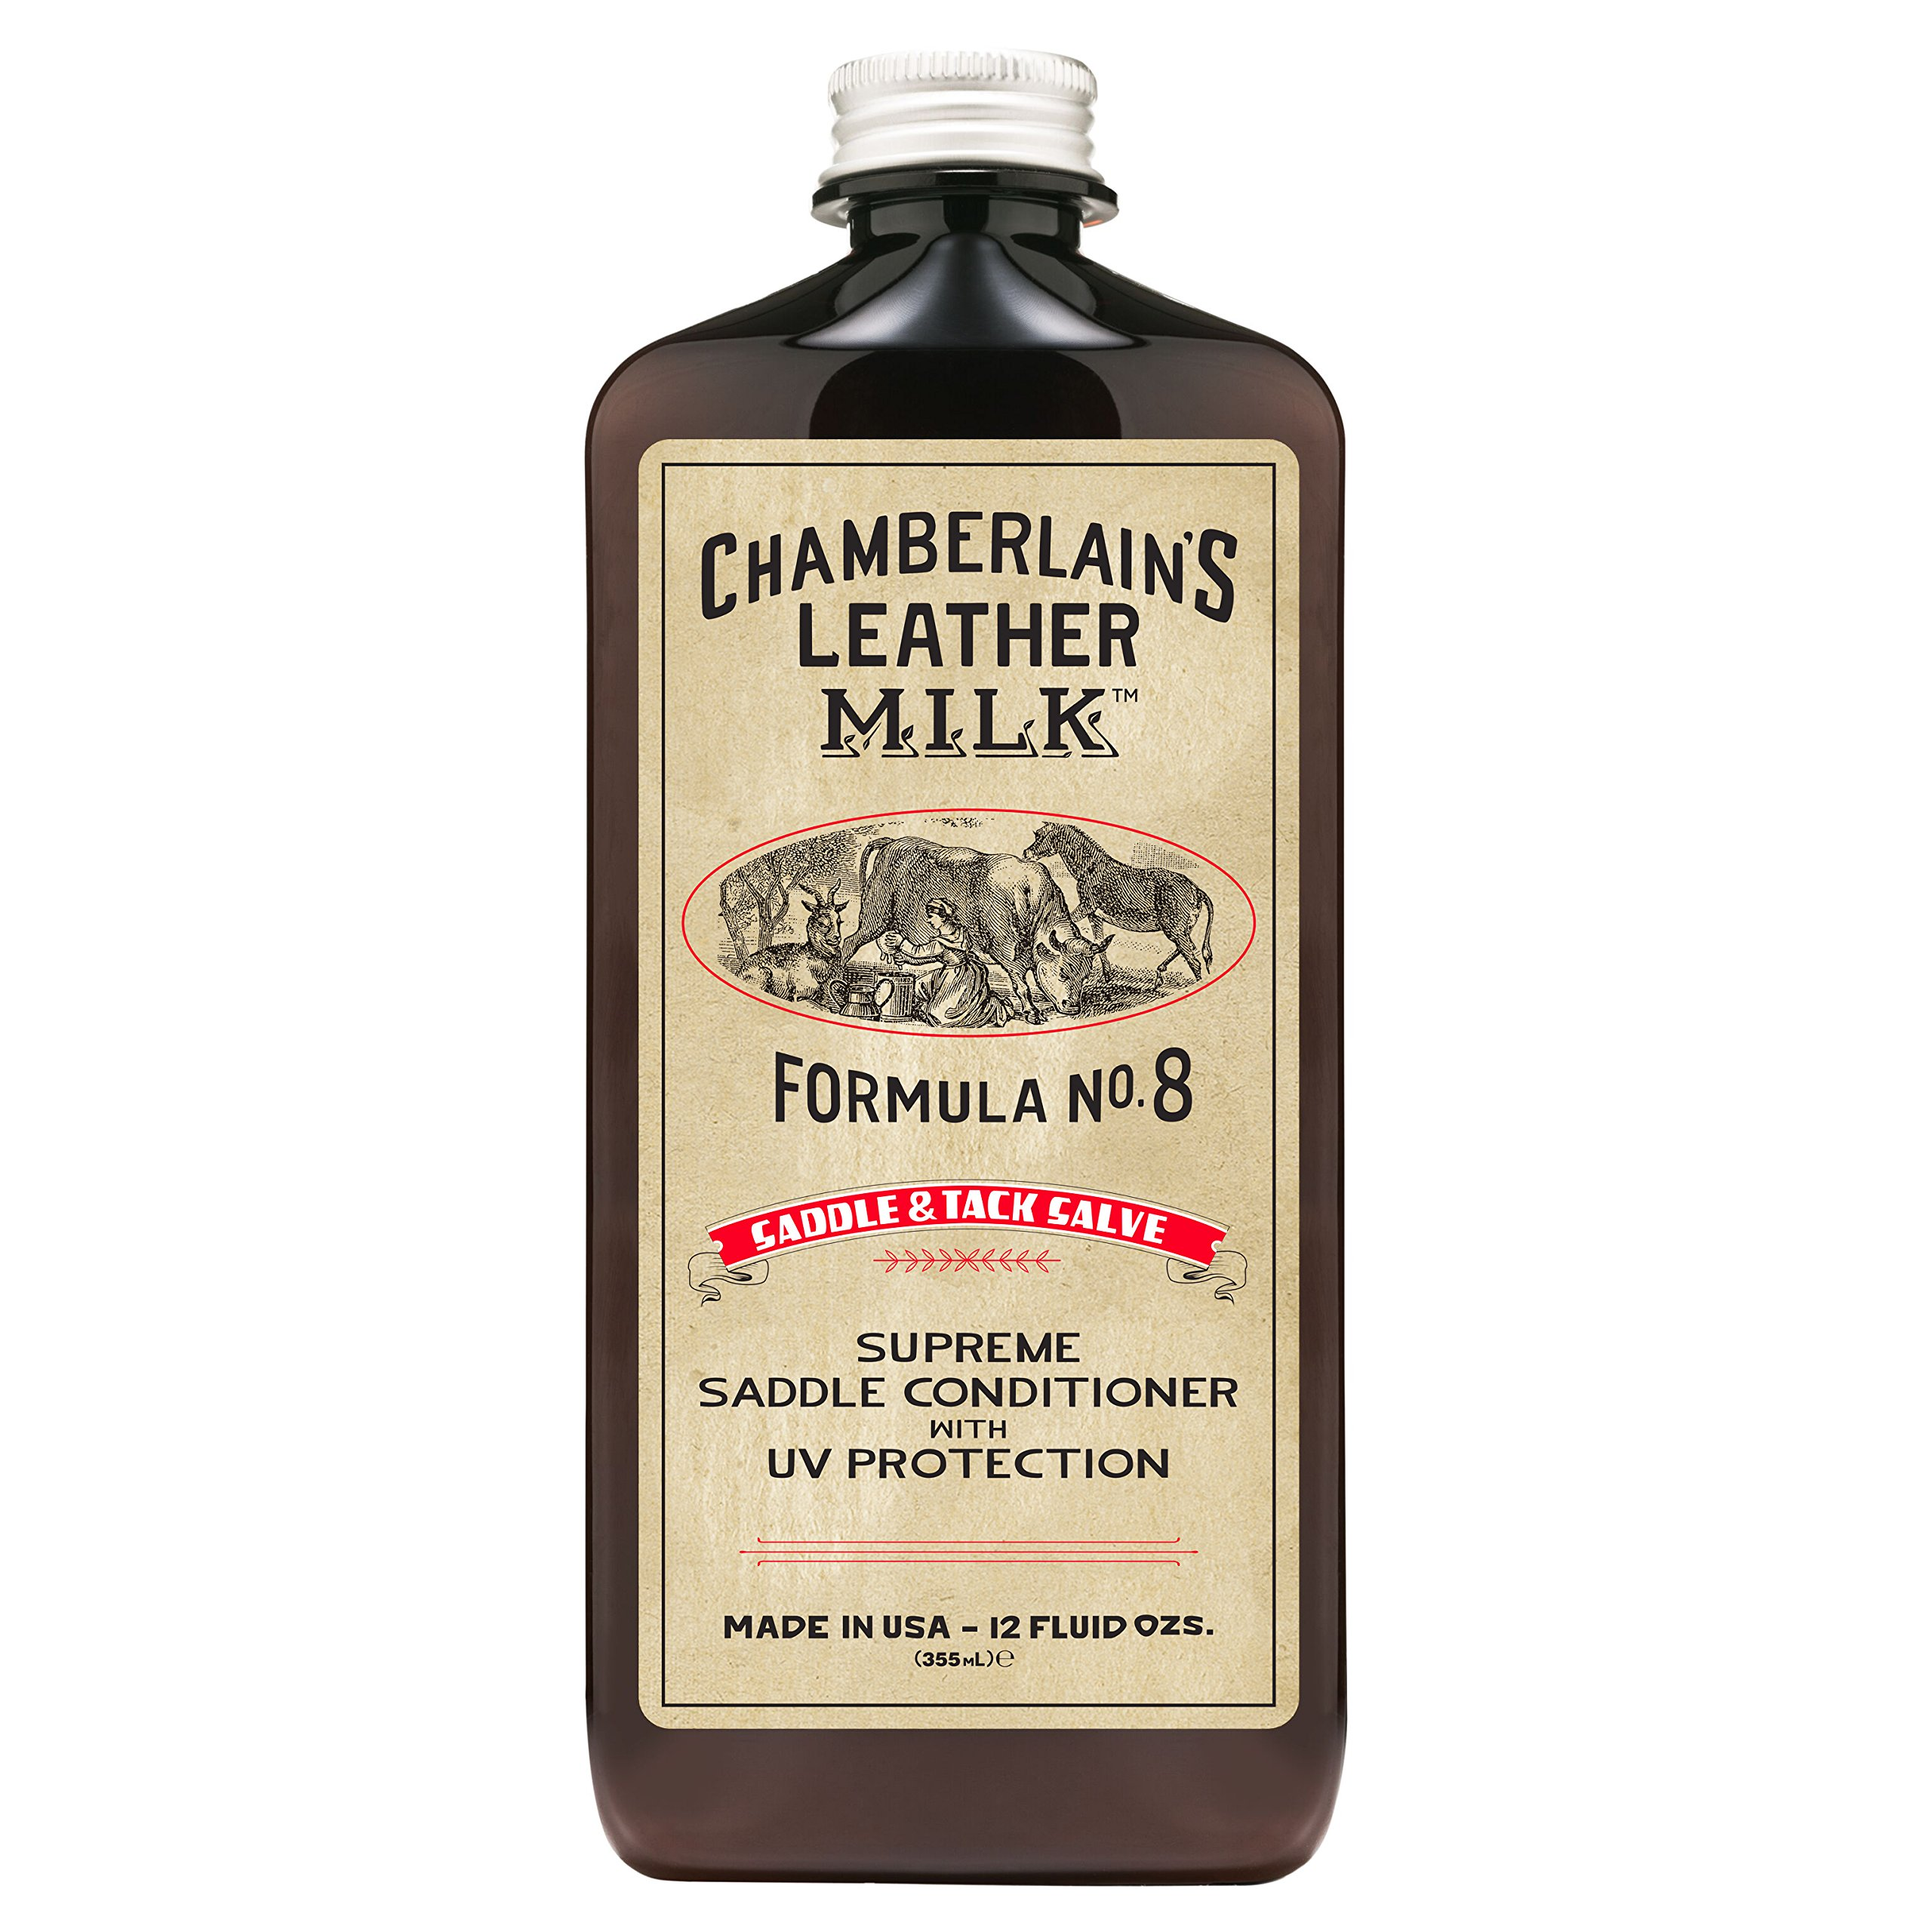 Leather Milk Saddle & Tack Leather Conditioner and Cleaner - Saddle Conditioner No. 8 - All-Natural, Non-Toxic Conditioner w/ UV Protection. Dye and Scent Free. Made in USA. Includes Conditioning Pad!